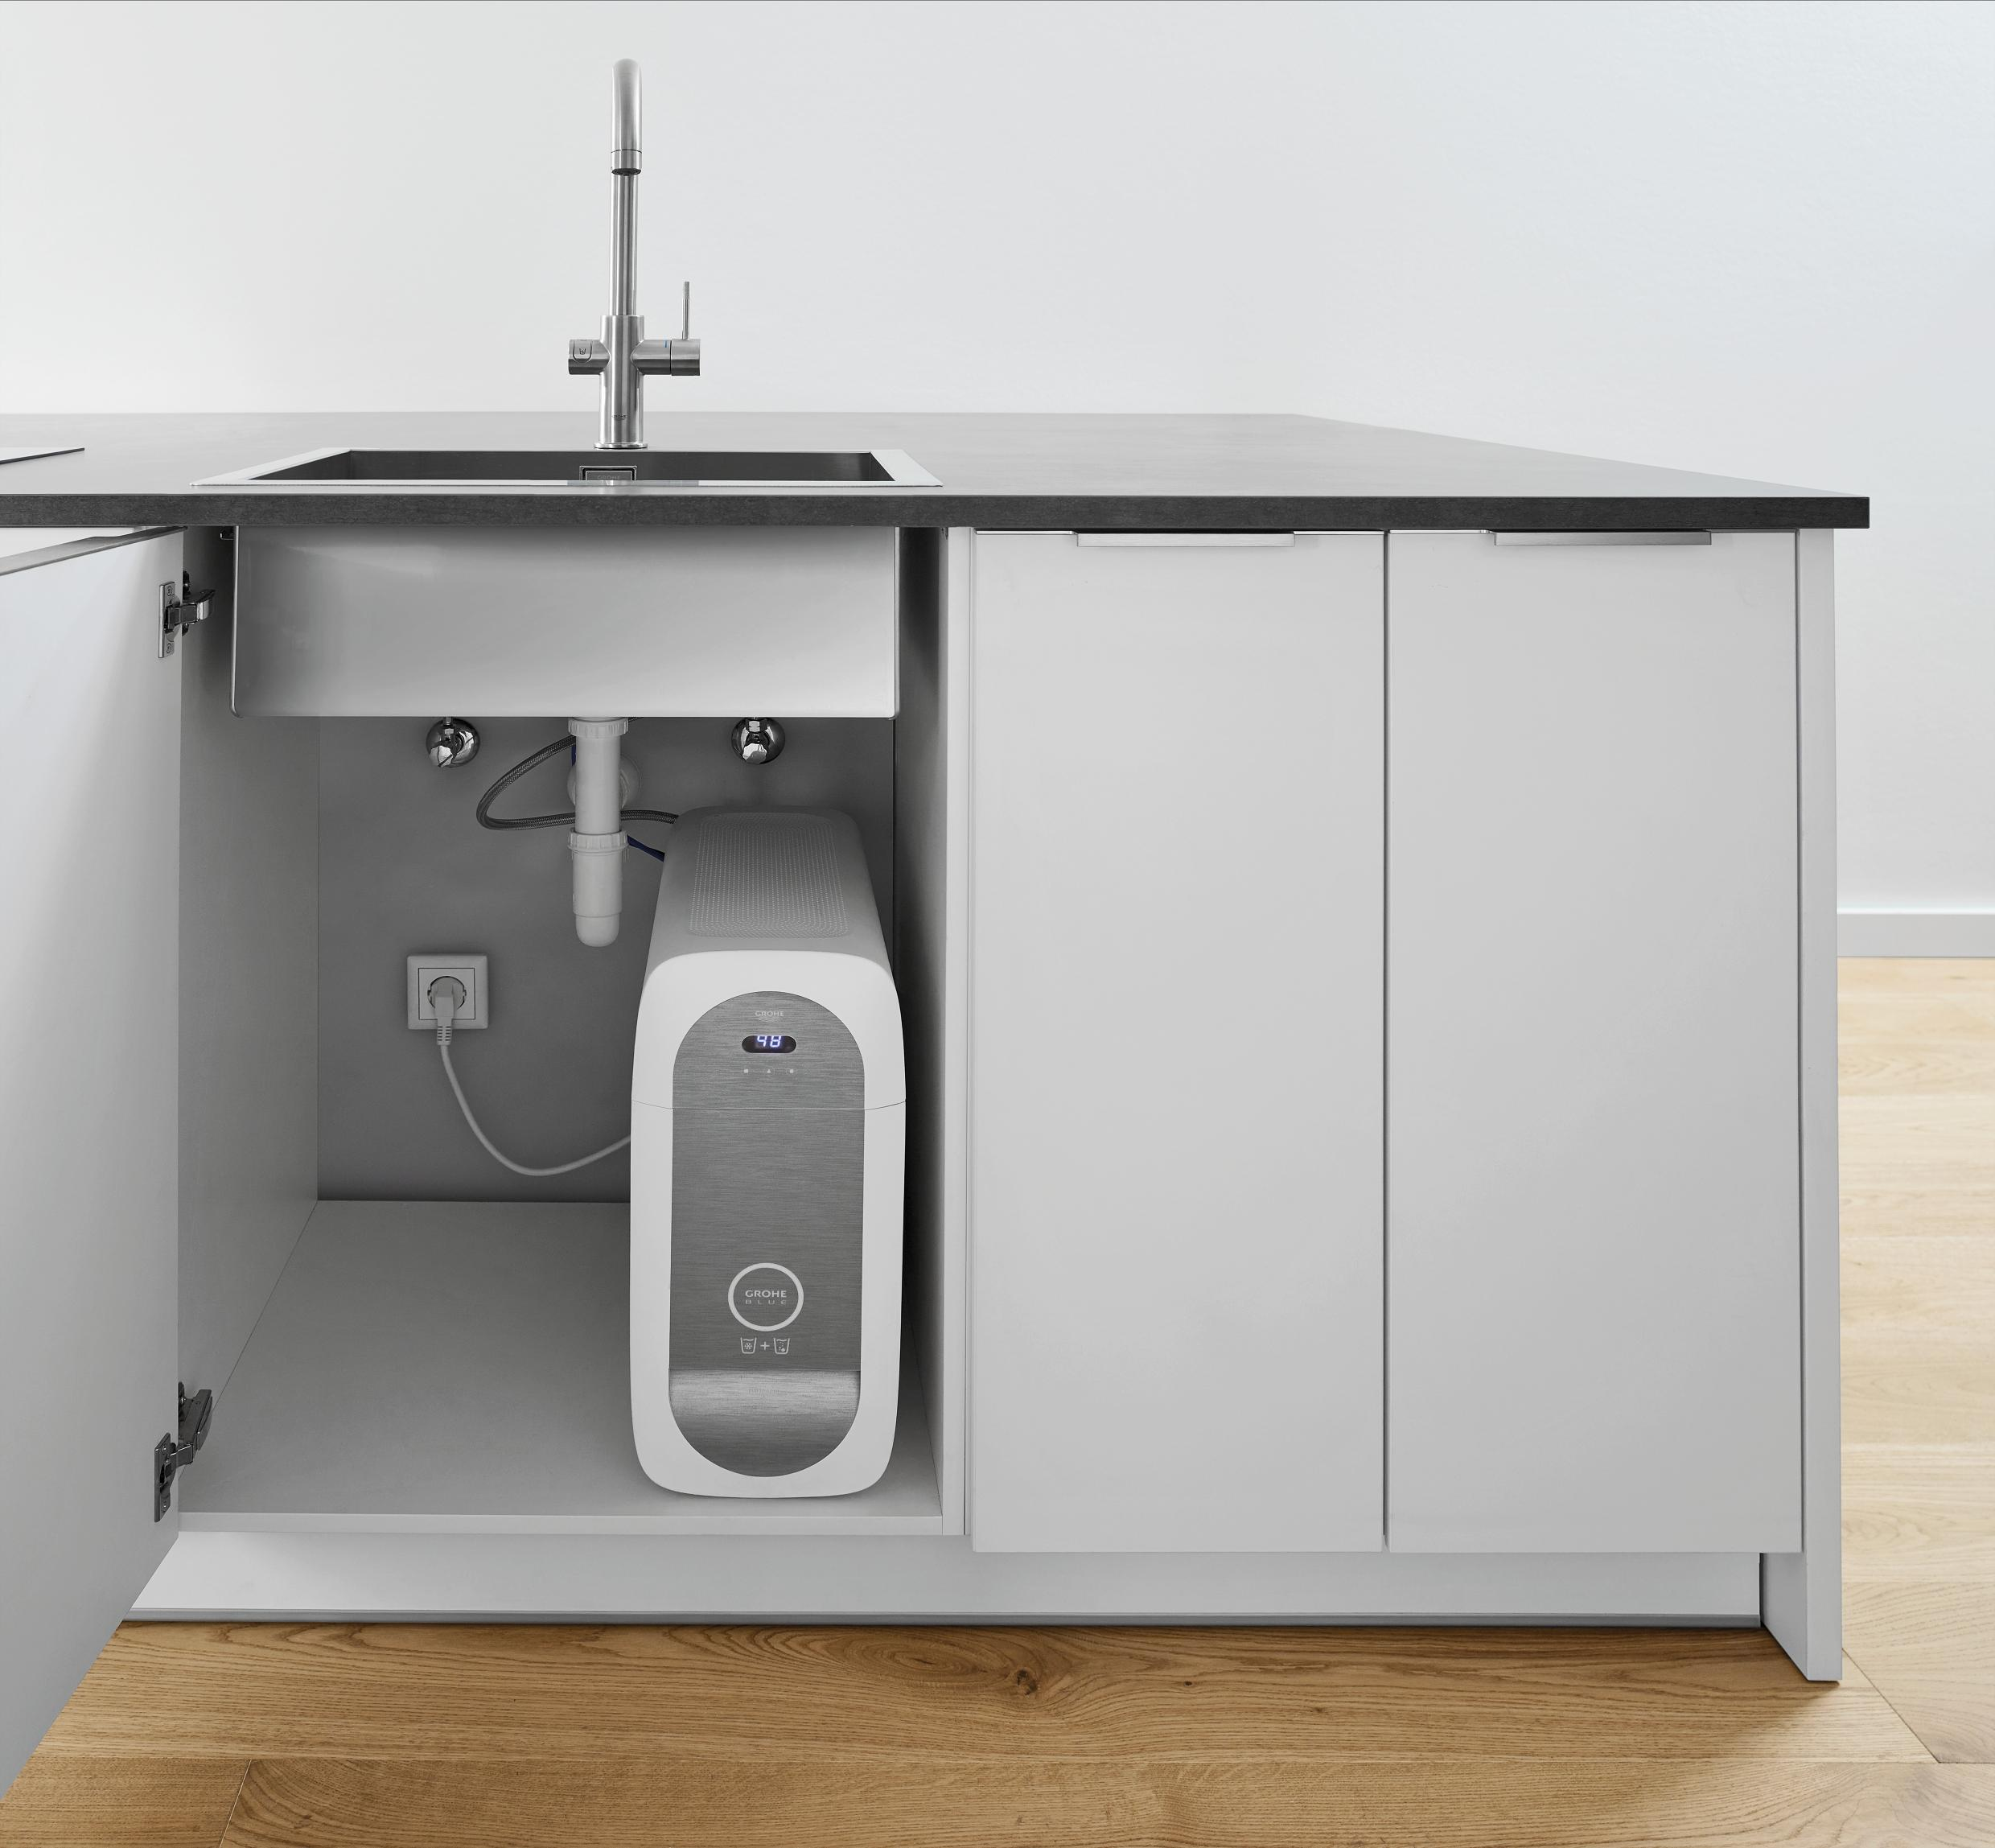 15_grohe_blue_home_cooler.jpg